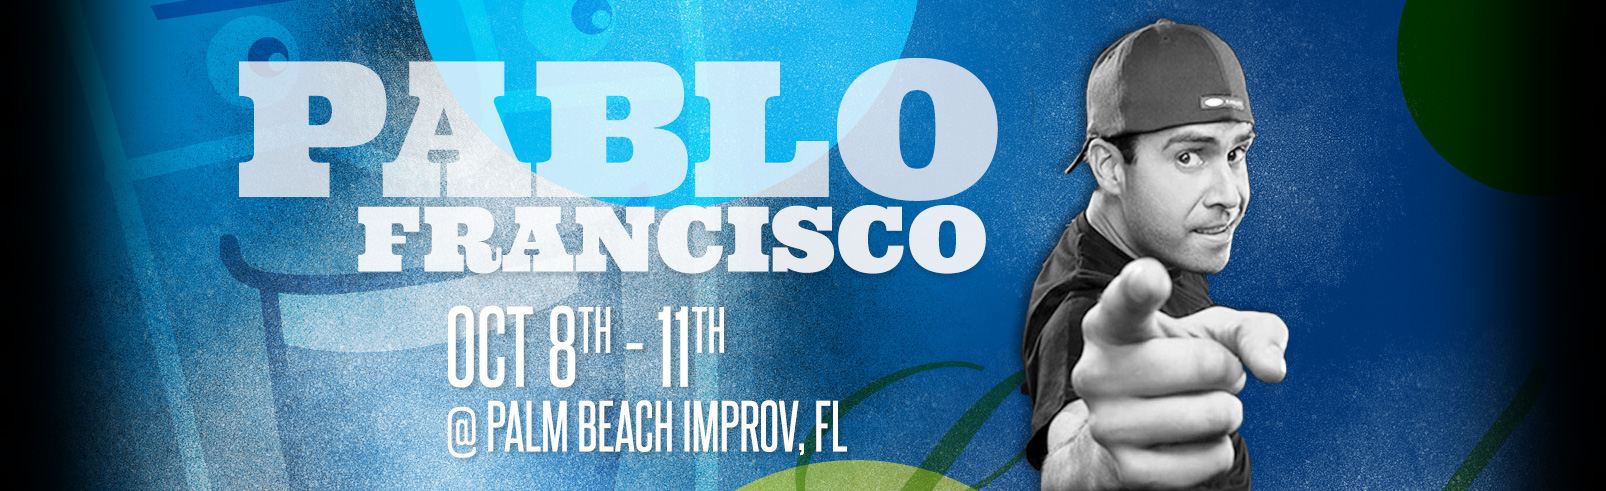 Pablo Francisco @ Palm Beach Improv